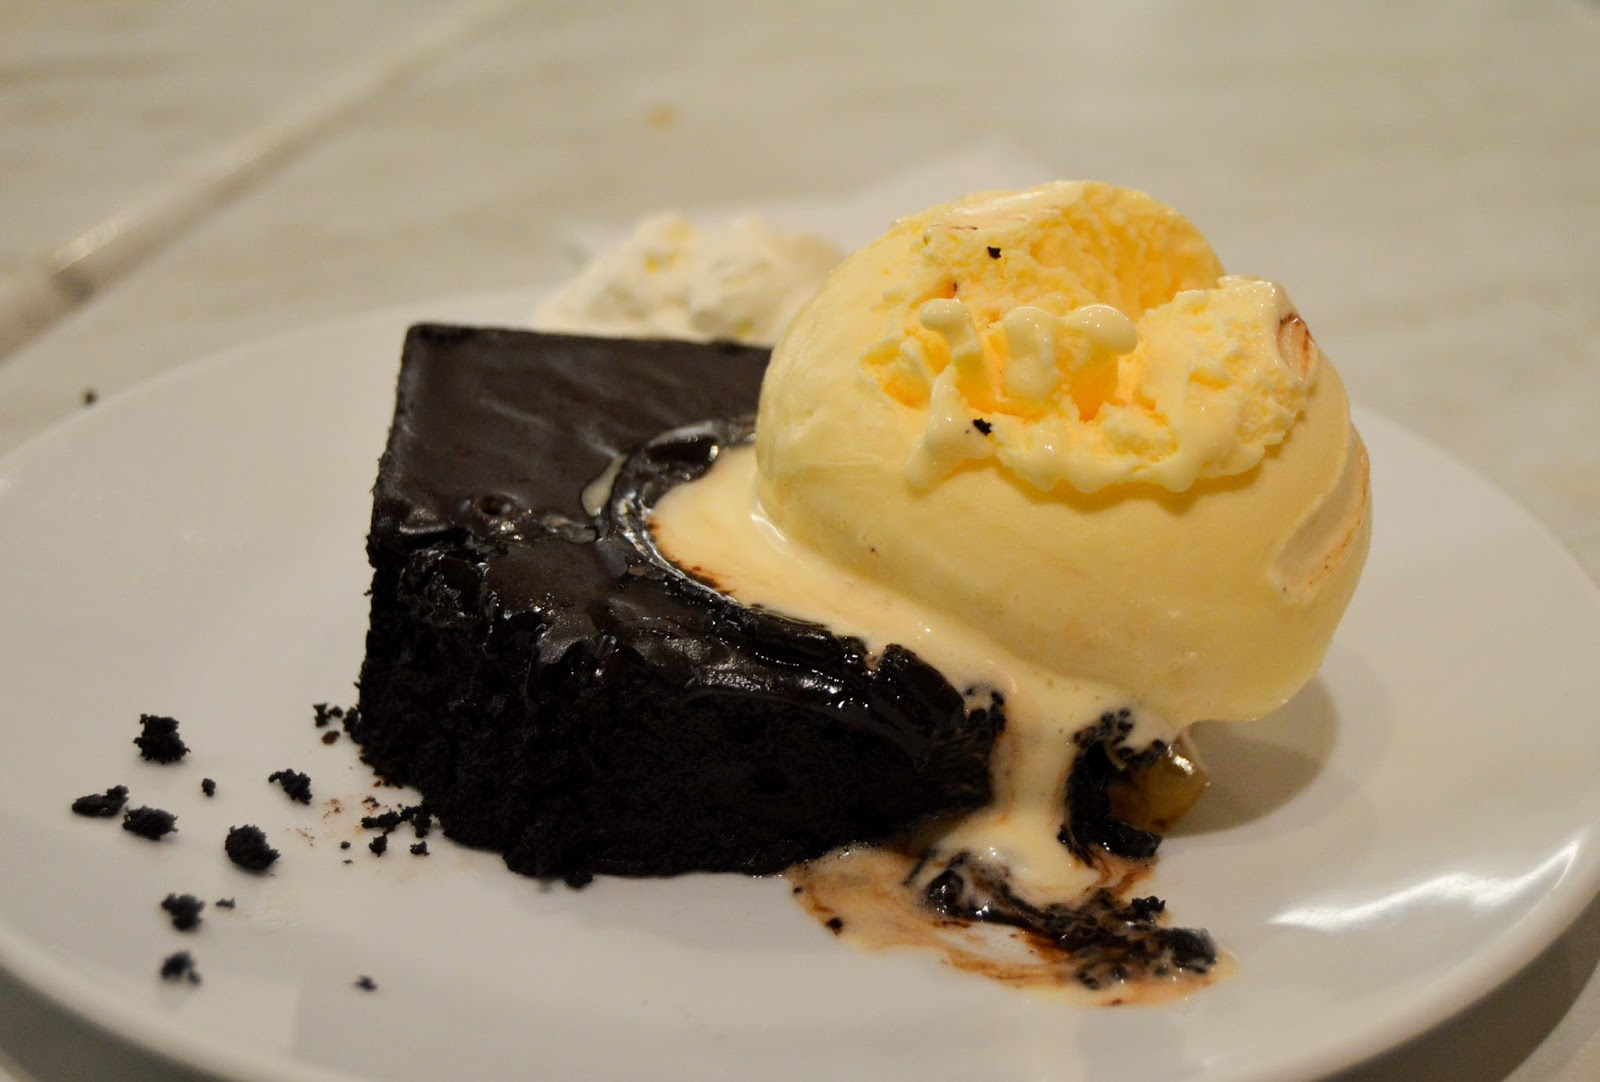 Chocolate Brownie & Ice Cream Free Stock Photos